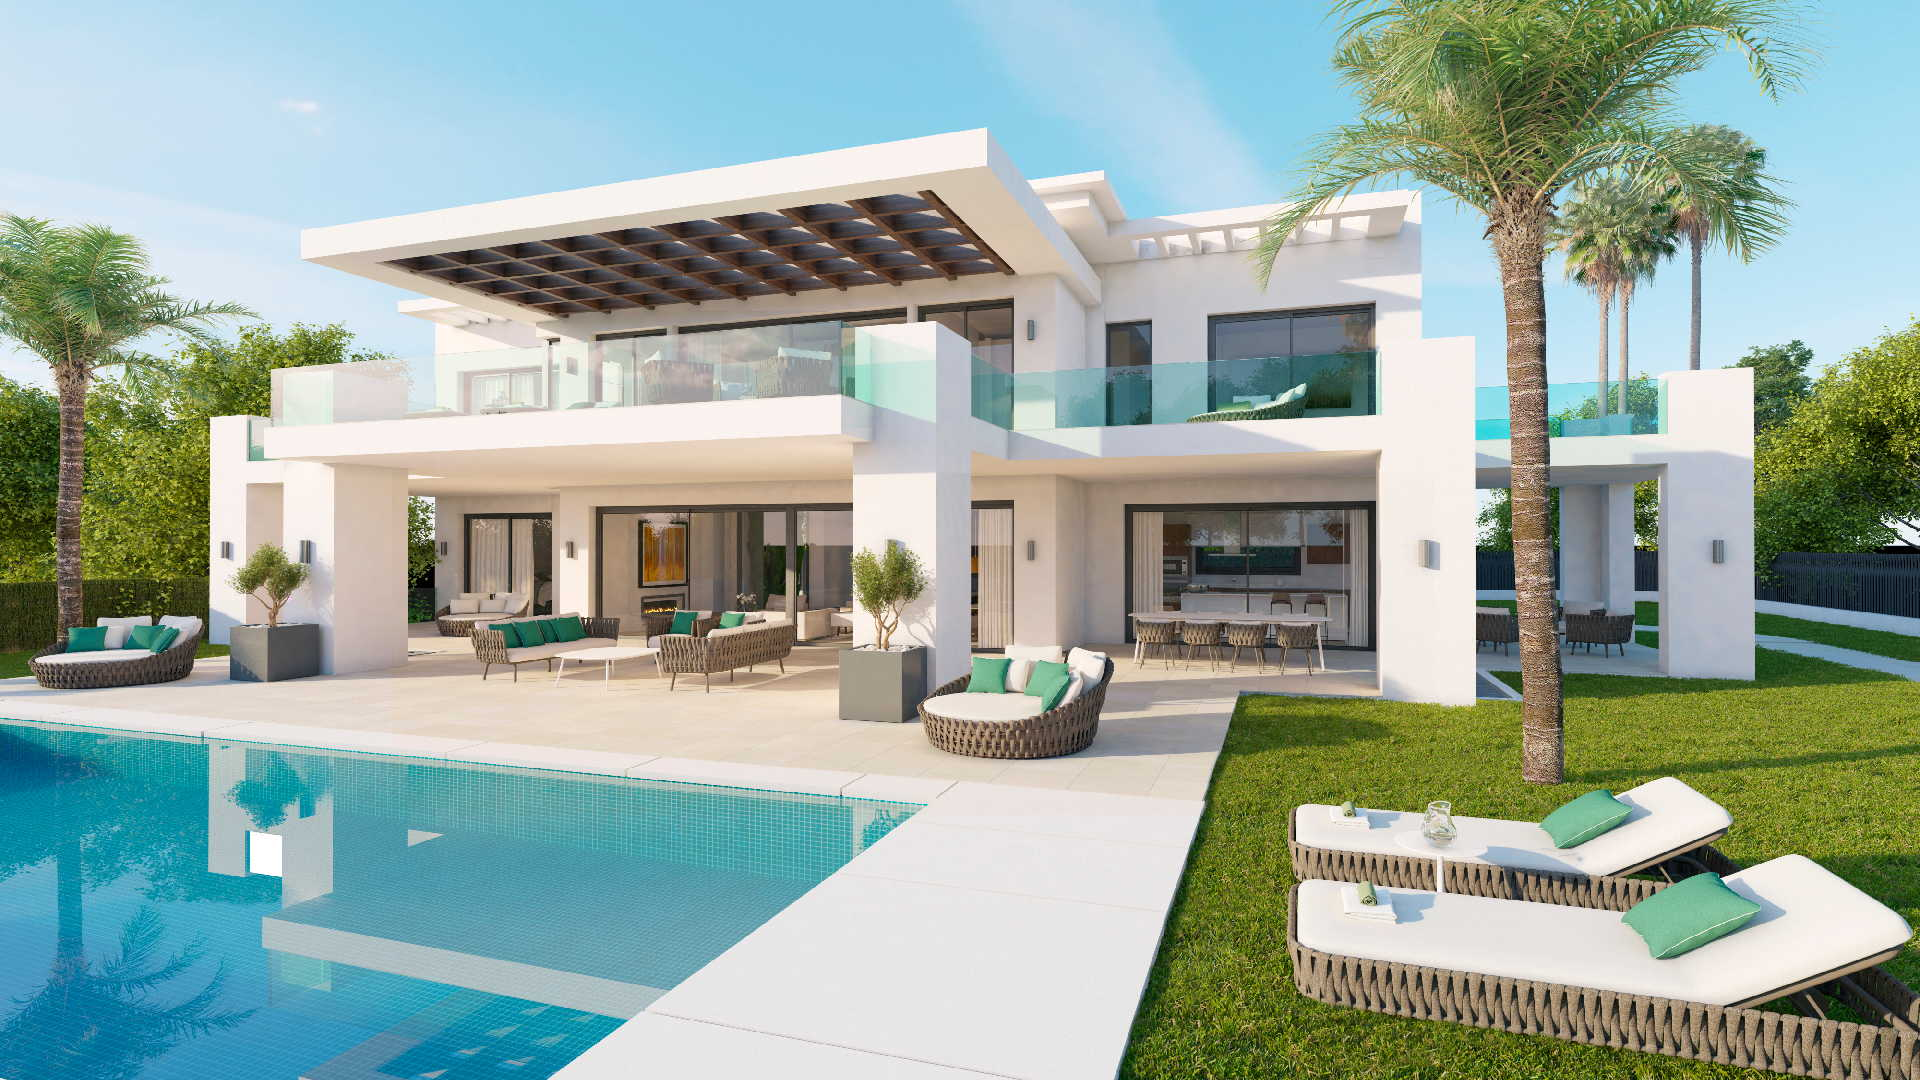 New villa in los olivos nueva andalucia marbella for sale for Villa moderne plan